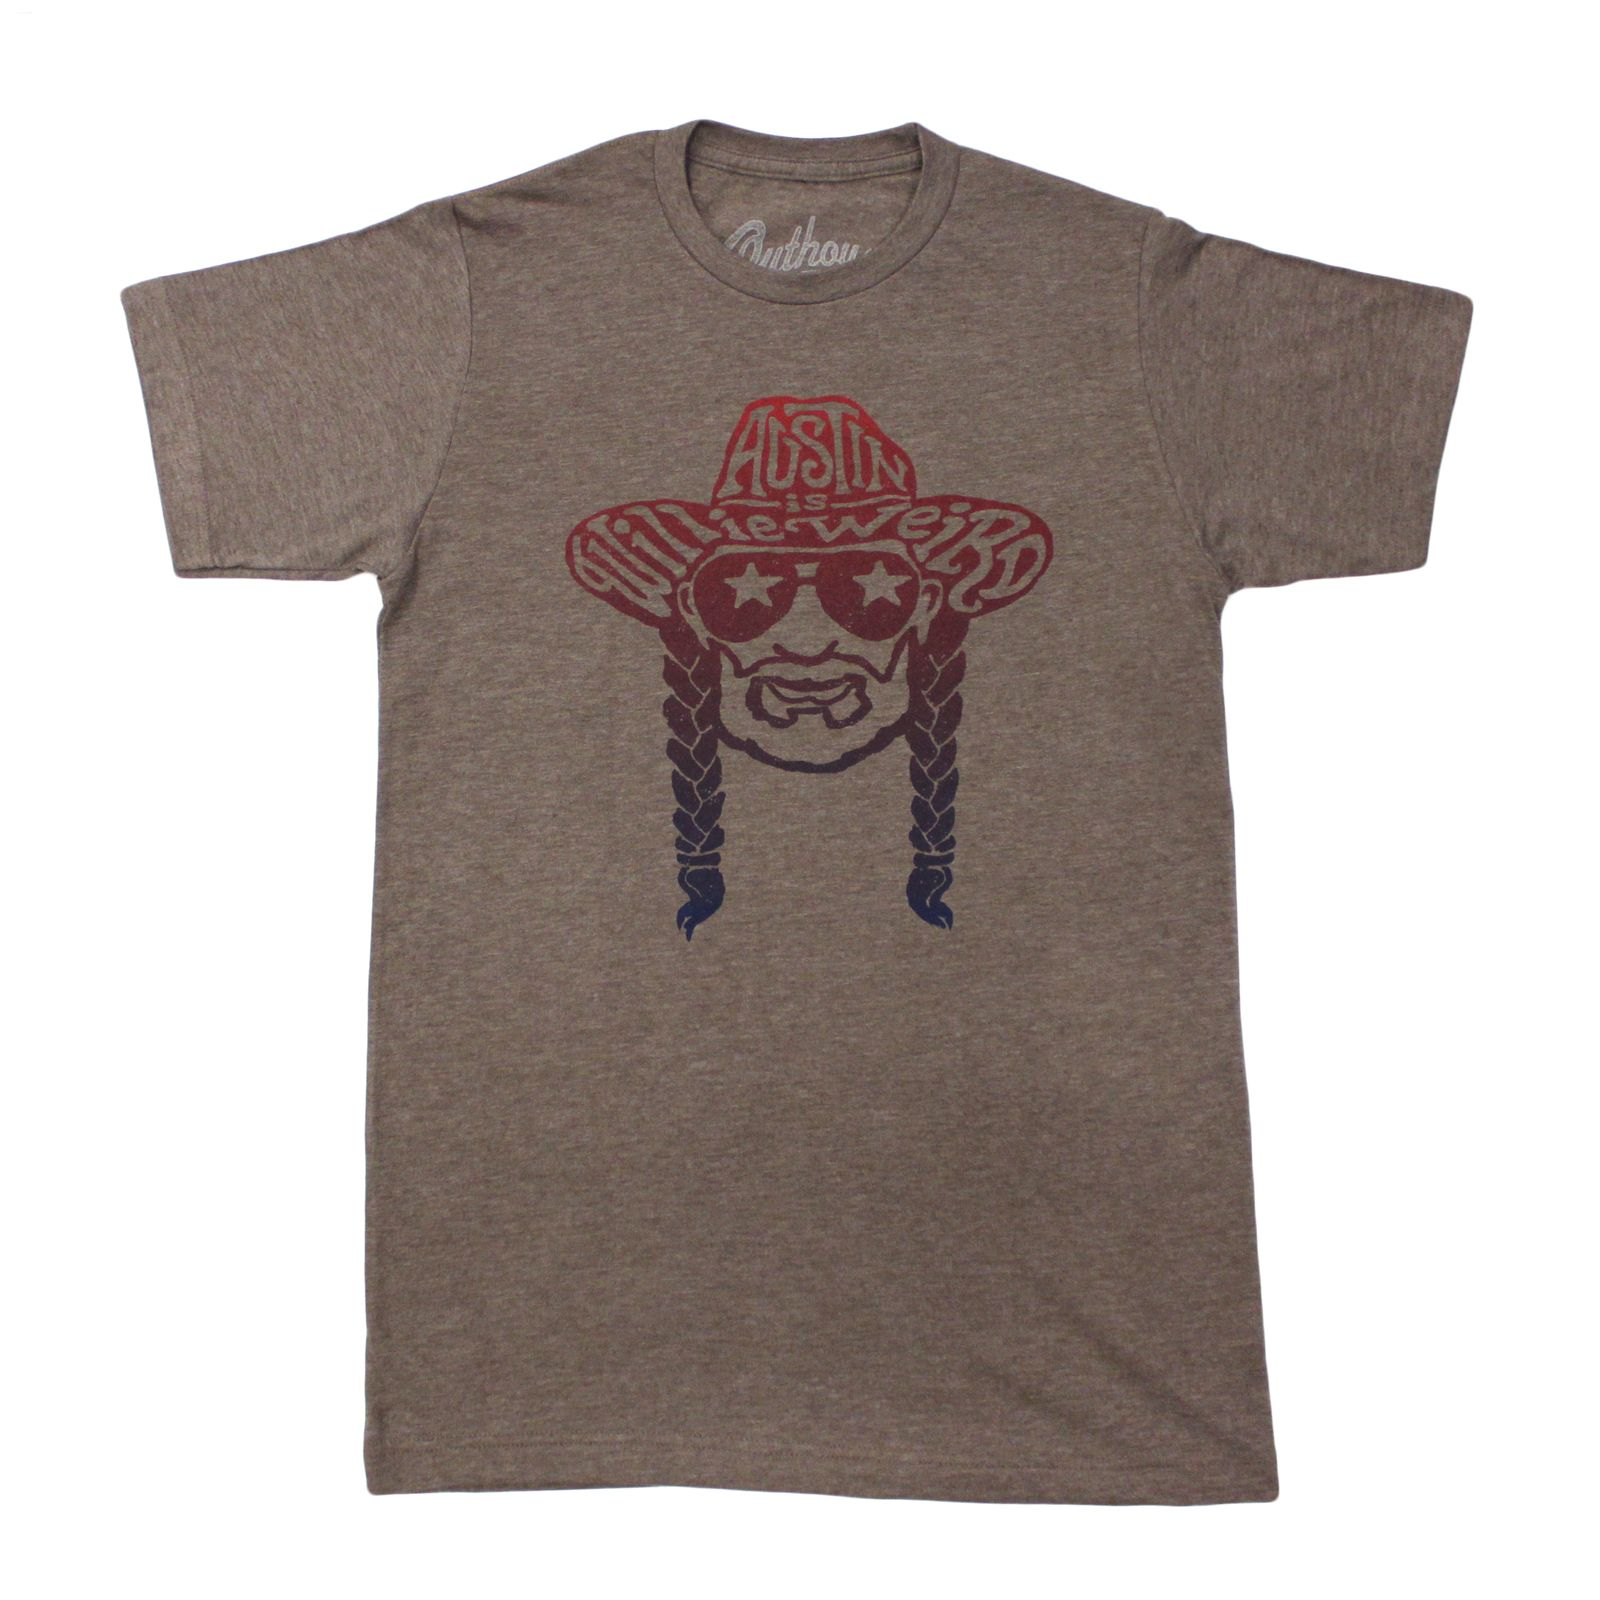 Austin is Willie Weird T-shirt